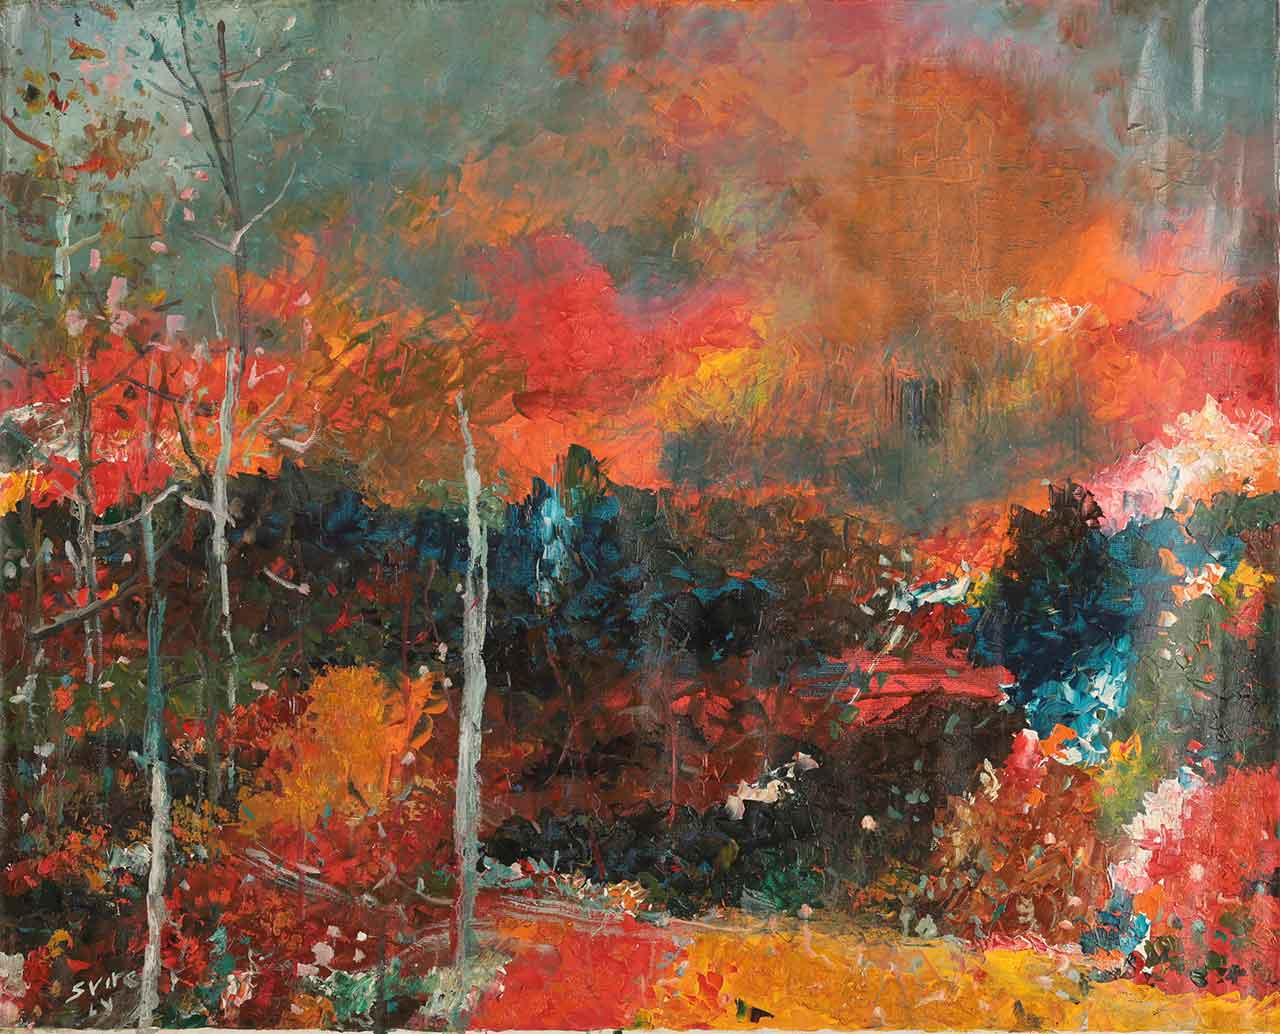 Autumn. Temo Svirely, georgian-ukrainian artist (born 1965 in Georgia- died 2014 in Ukraine), oil, canvas, 2010